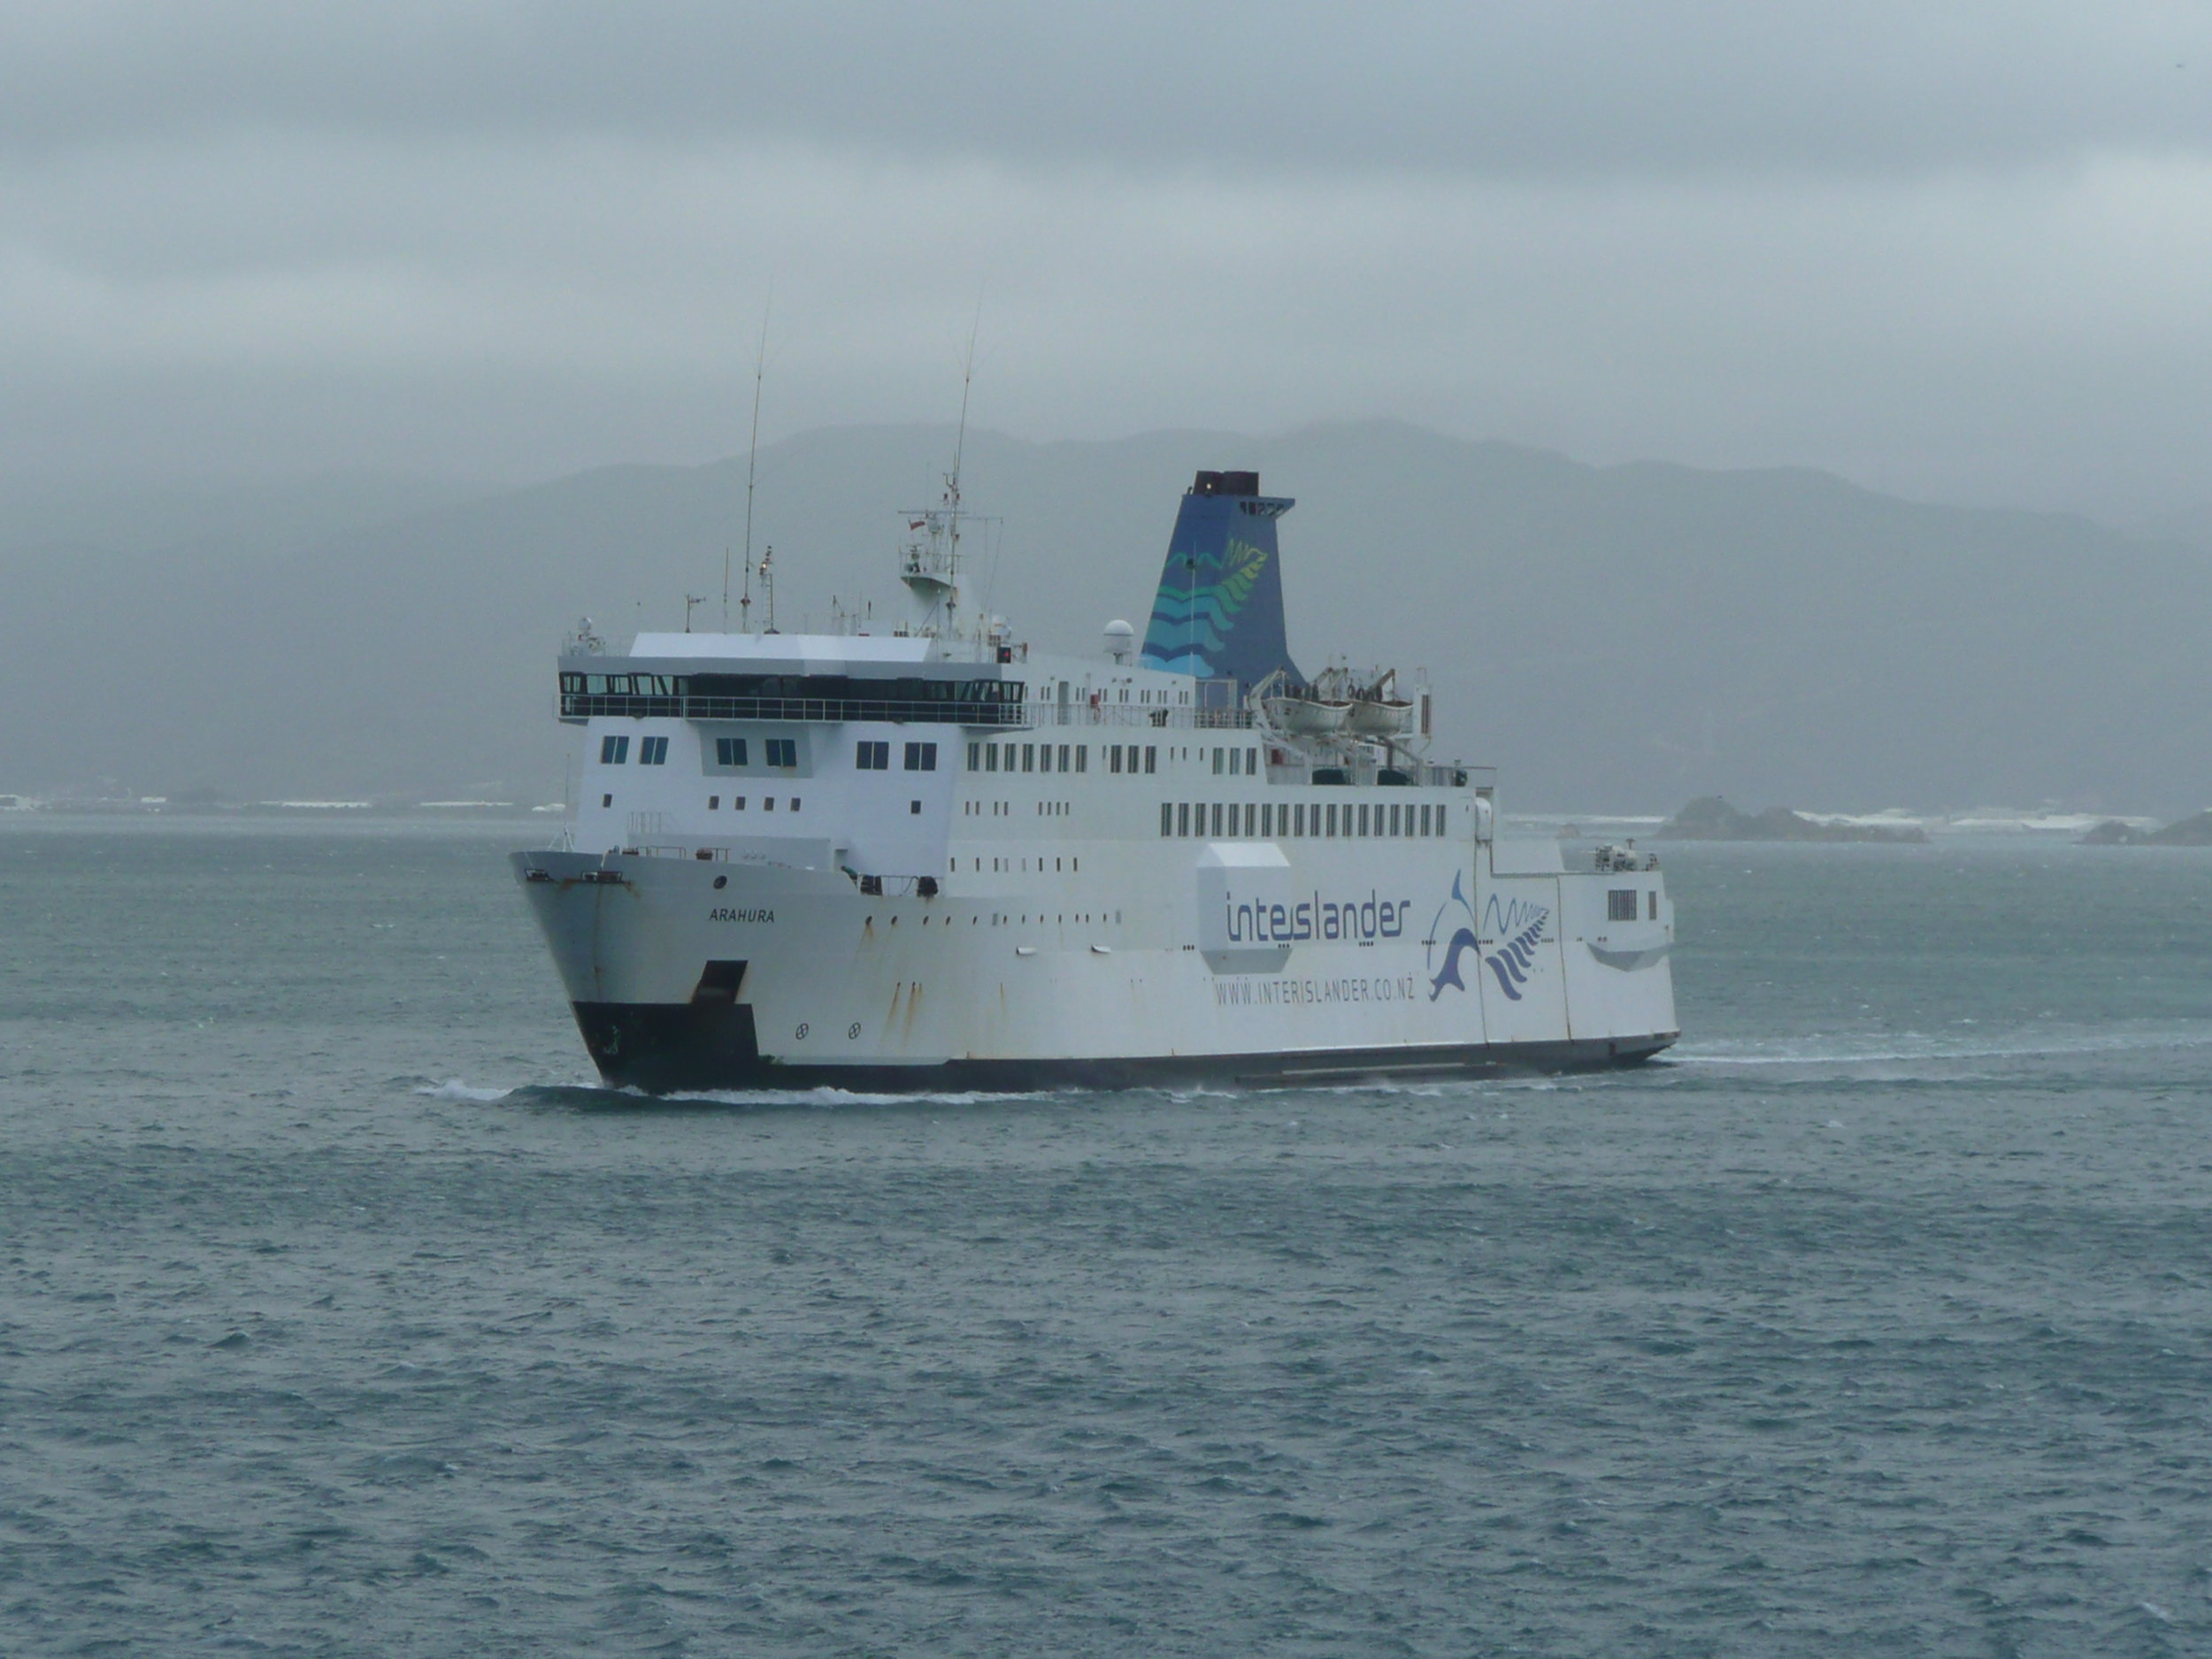 Interislander or Bluebridge...whichever floats your boat